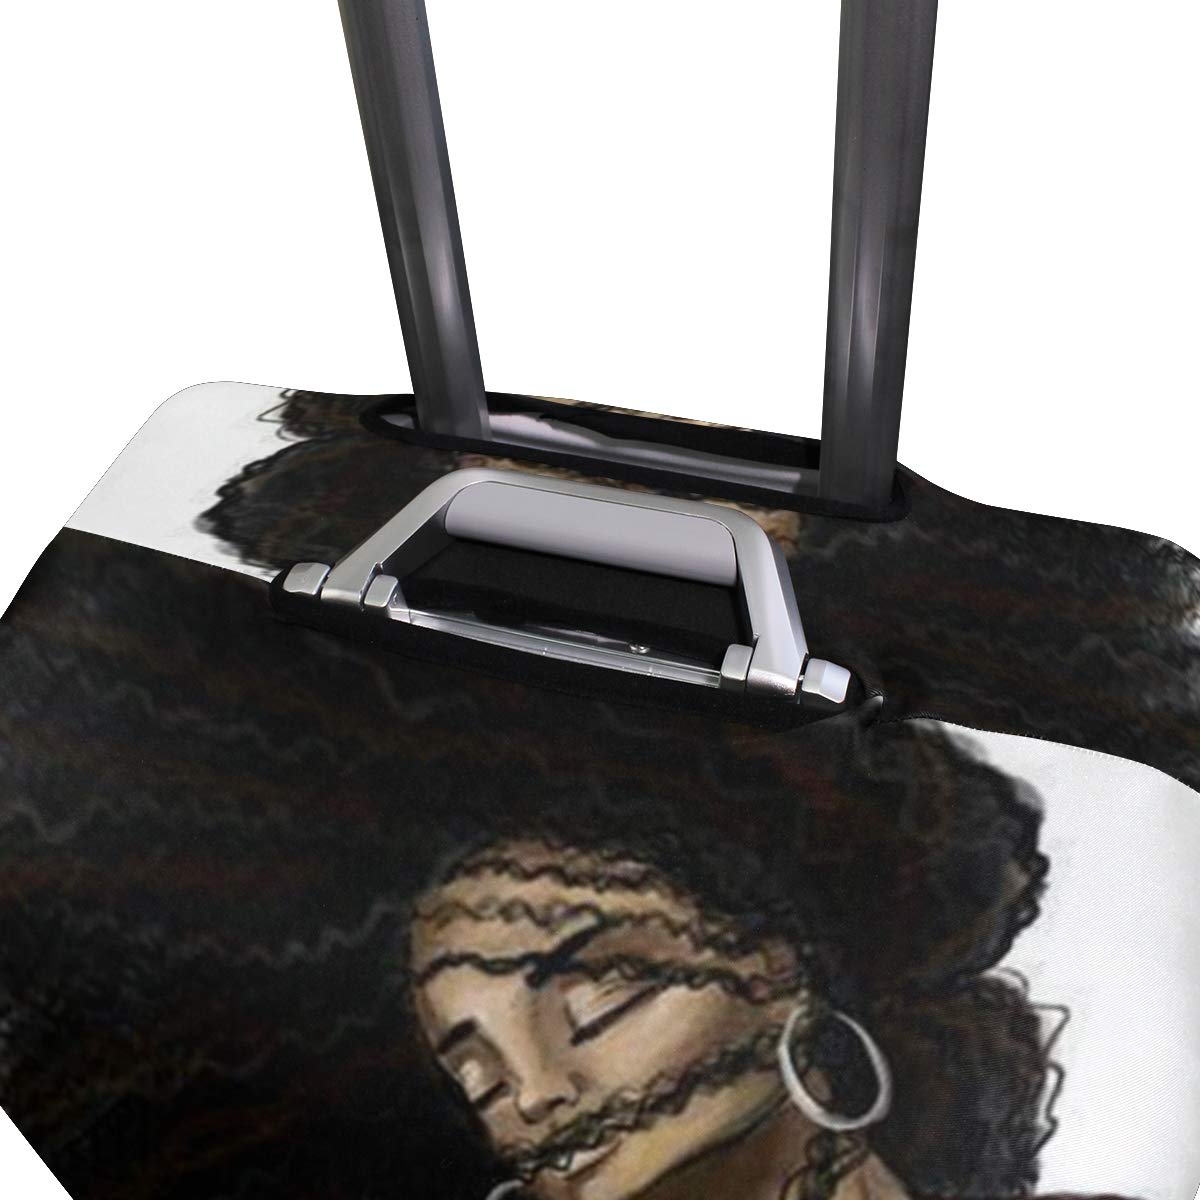 Travel Luggage Cover DIY Prints Protector Suitcase Baggage Fit 18-32 inch - Love Black Hair Art by banks jacqueline shop (Image #4)